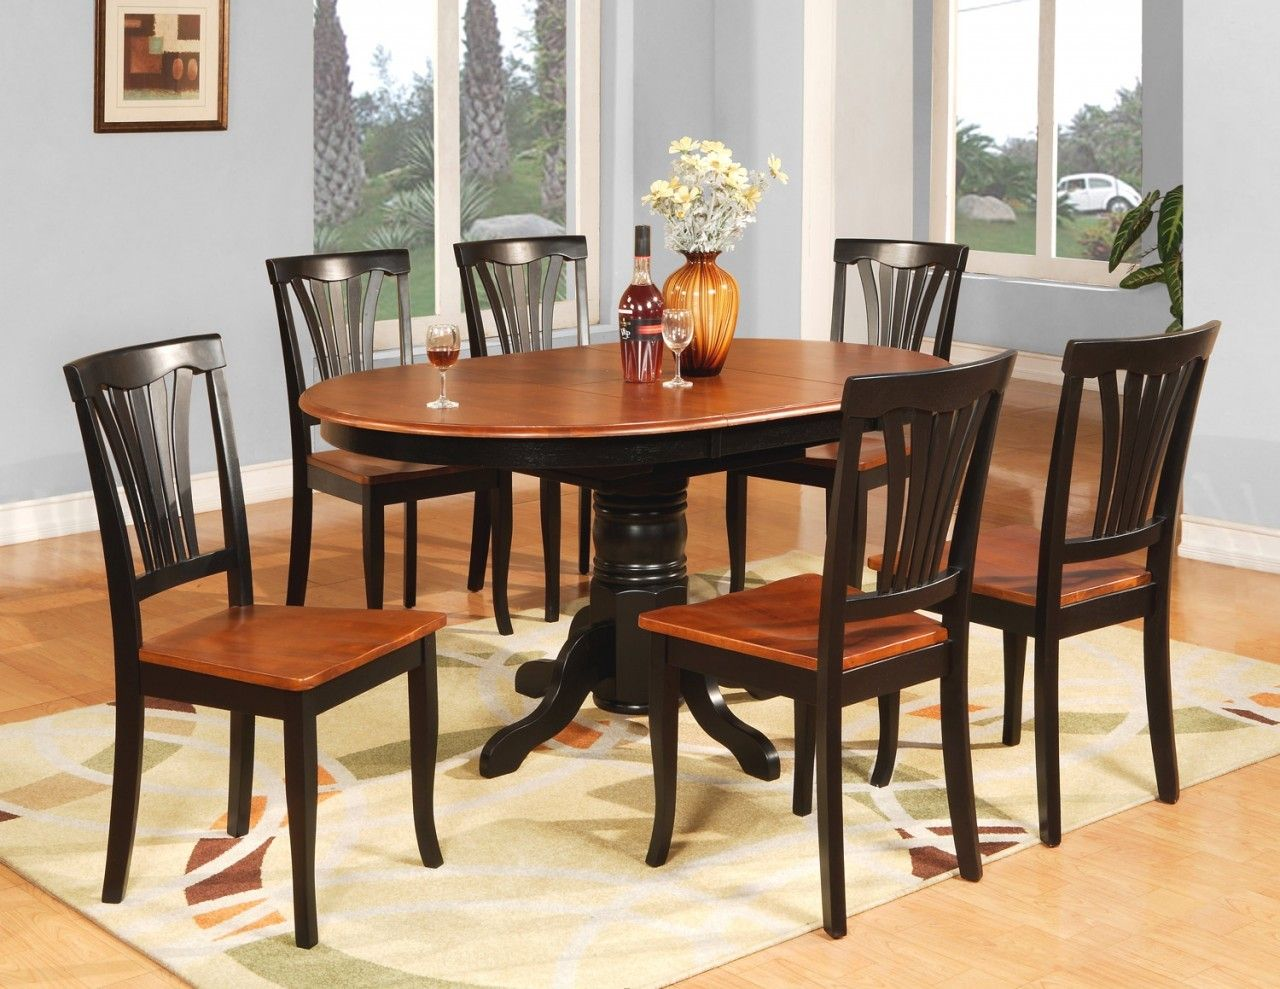 2 tone oval dining tables and chairs avon 5pc oval for 6 seater dining room table